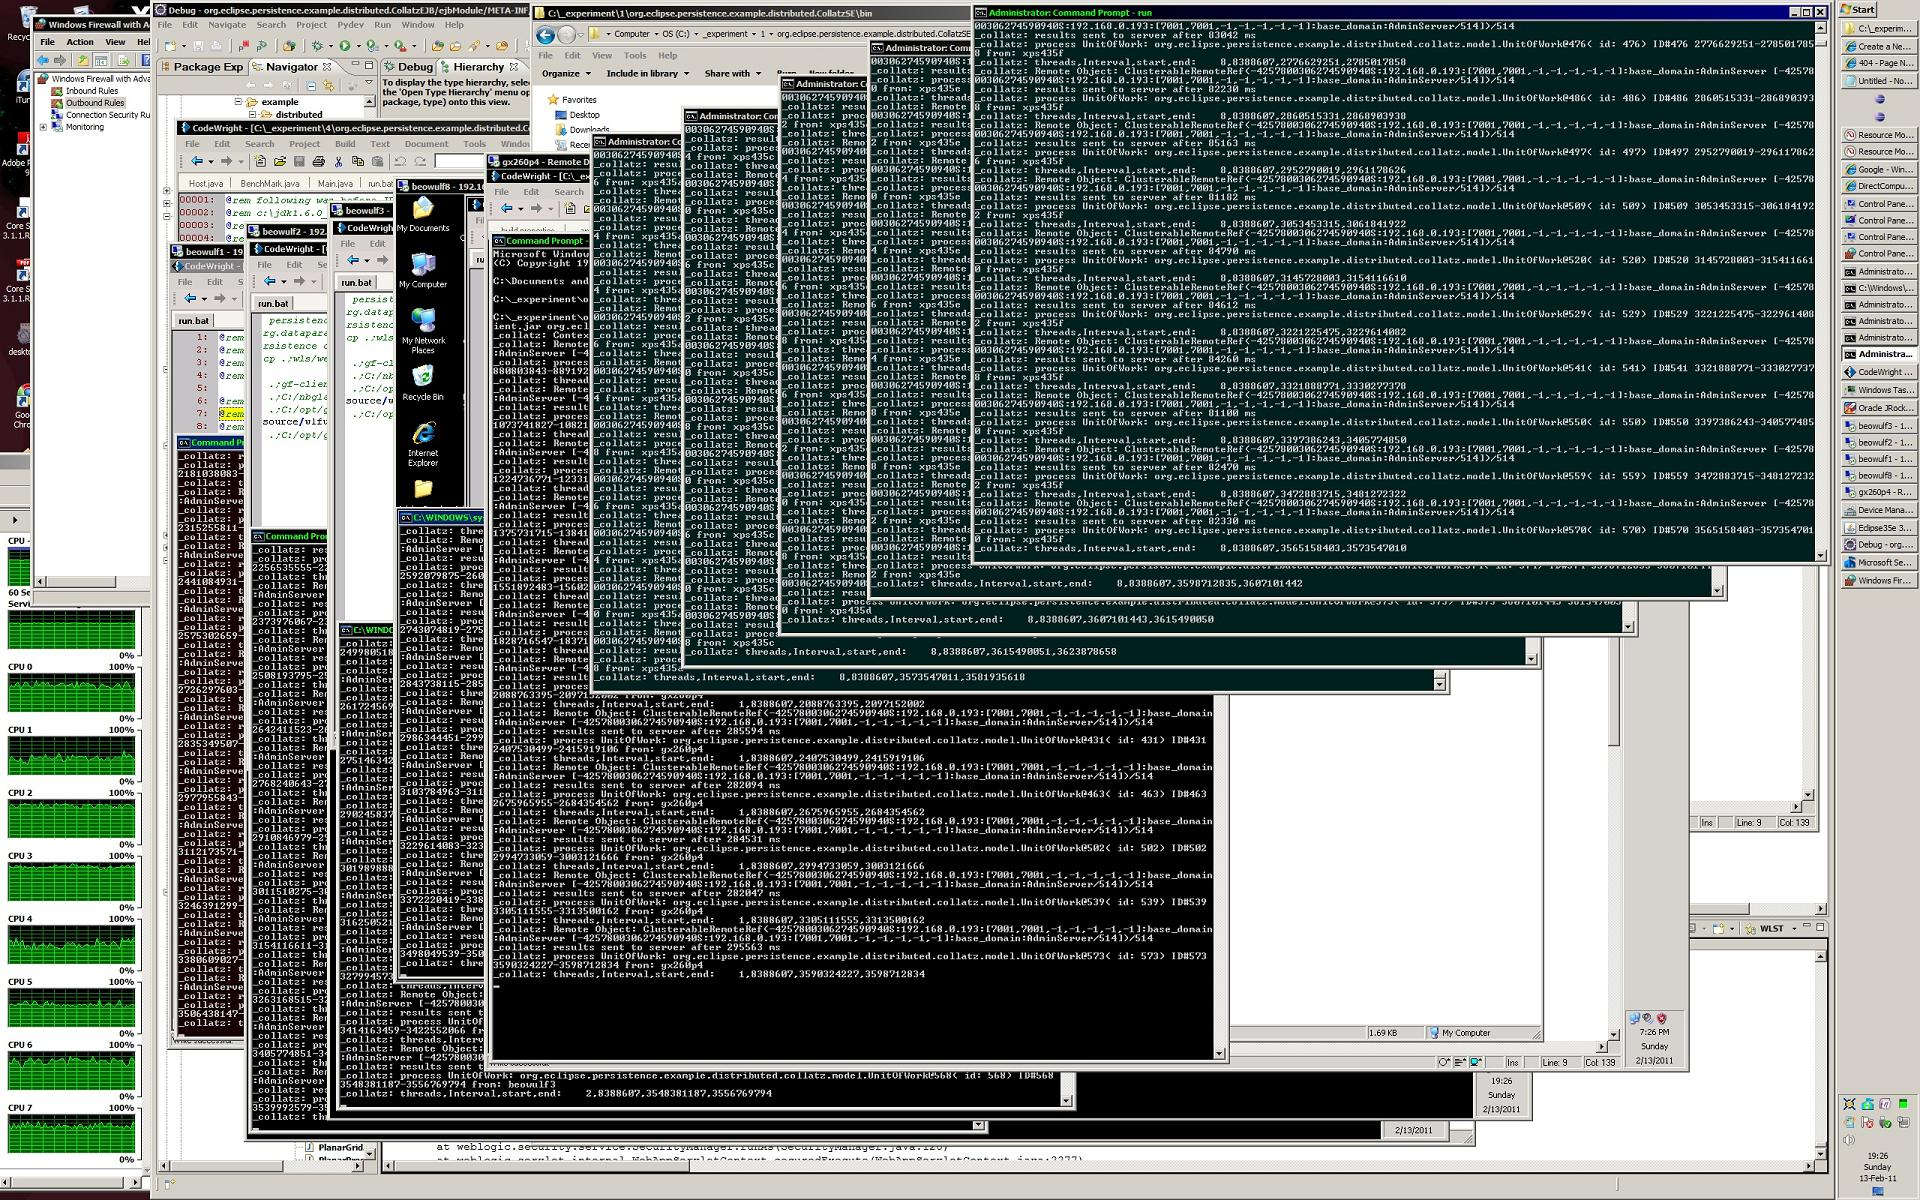 Image:20110213_collatz_proto_cluster_screen_cap_12_threads_2.JPG